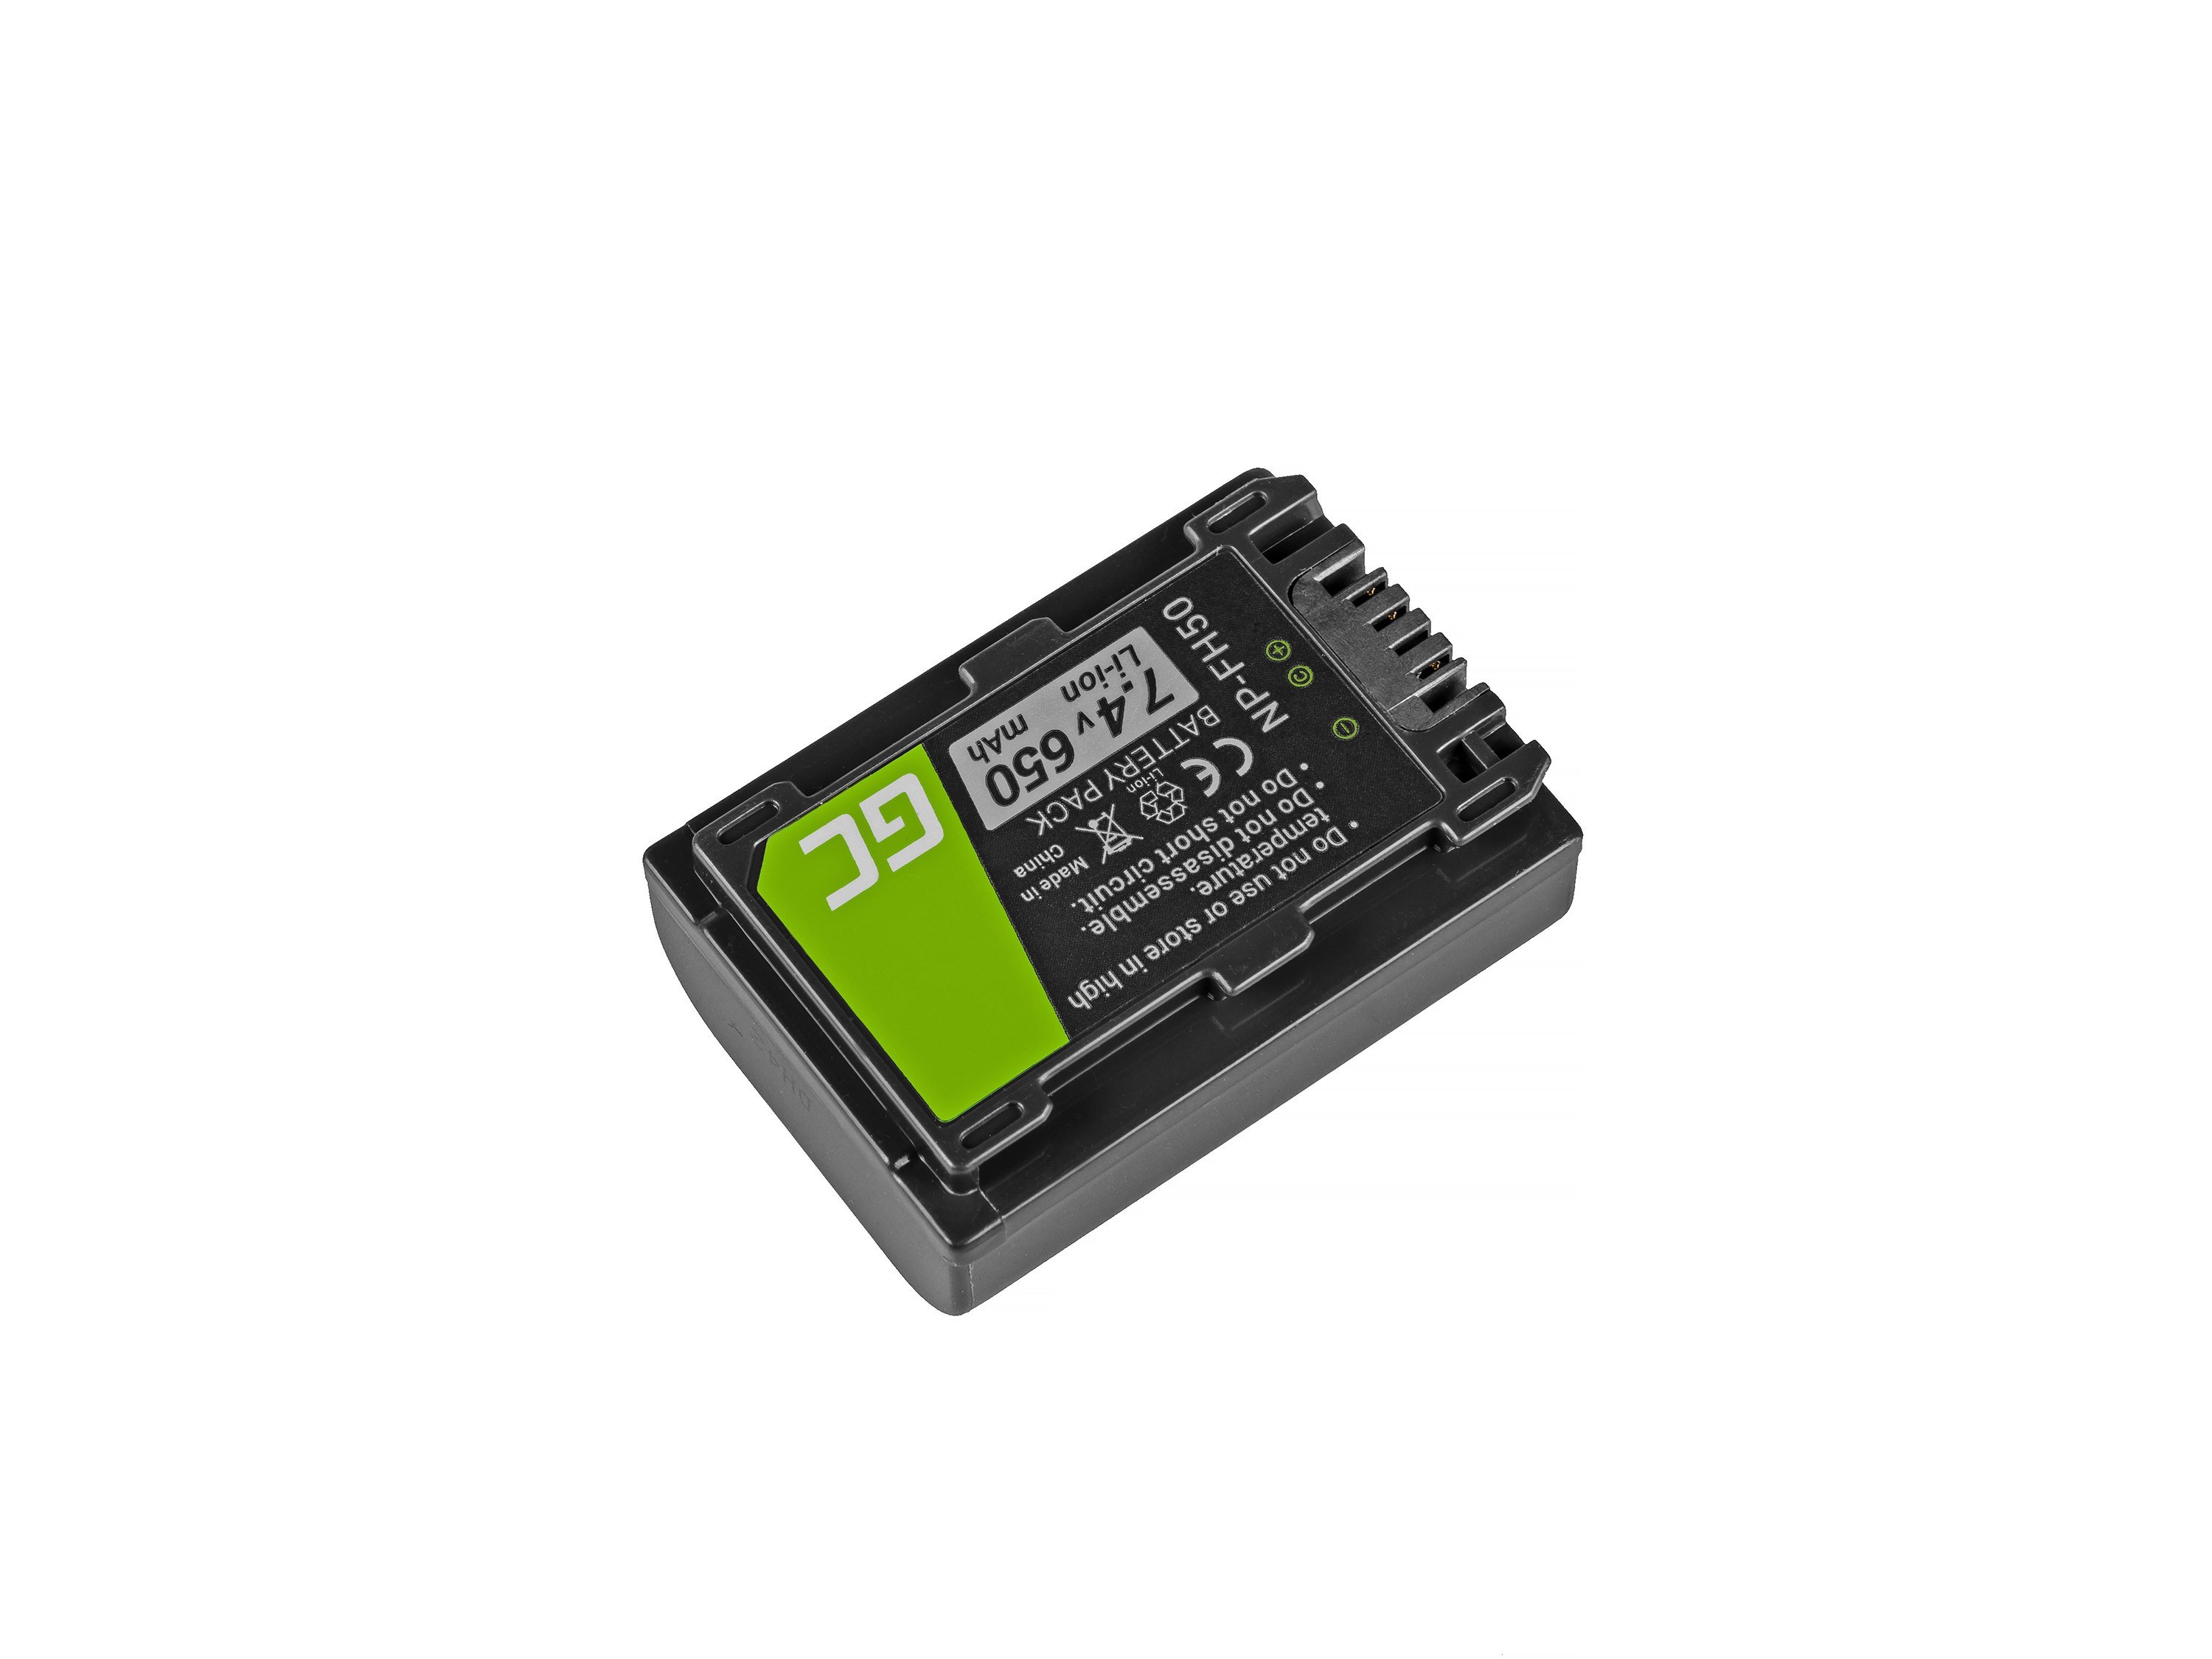 Green Cell NP-FH50 Camera Battery for Sony DCR-HC45, DCR-SR300E, DCR-SR70, DCR-SX50E 7.4V 650mAh